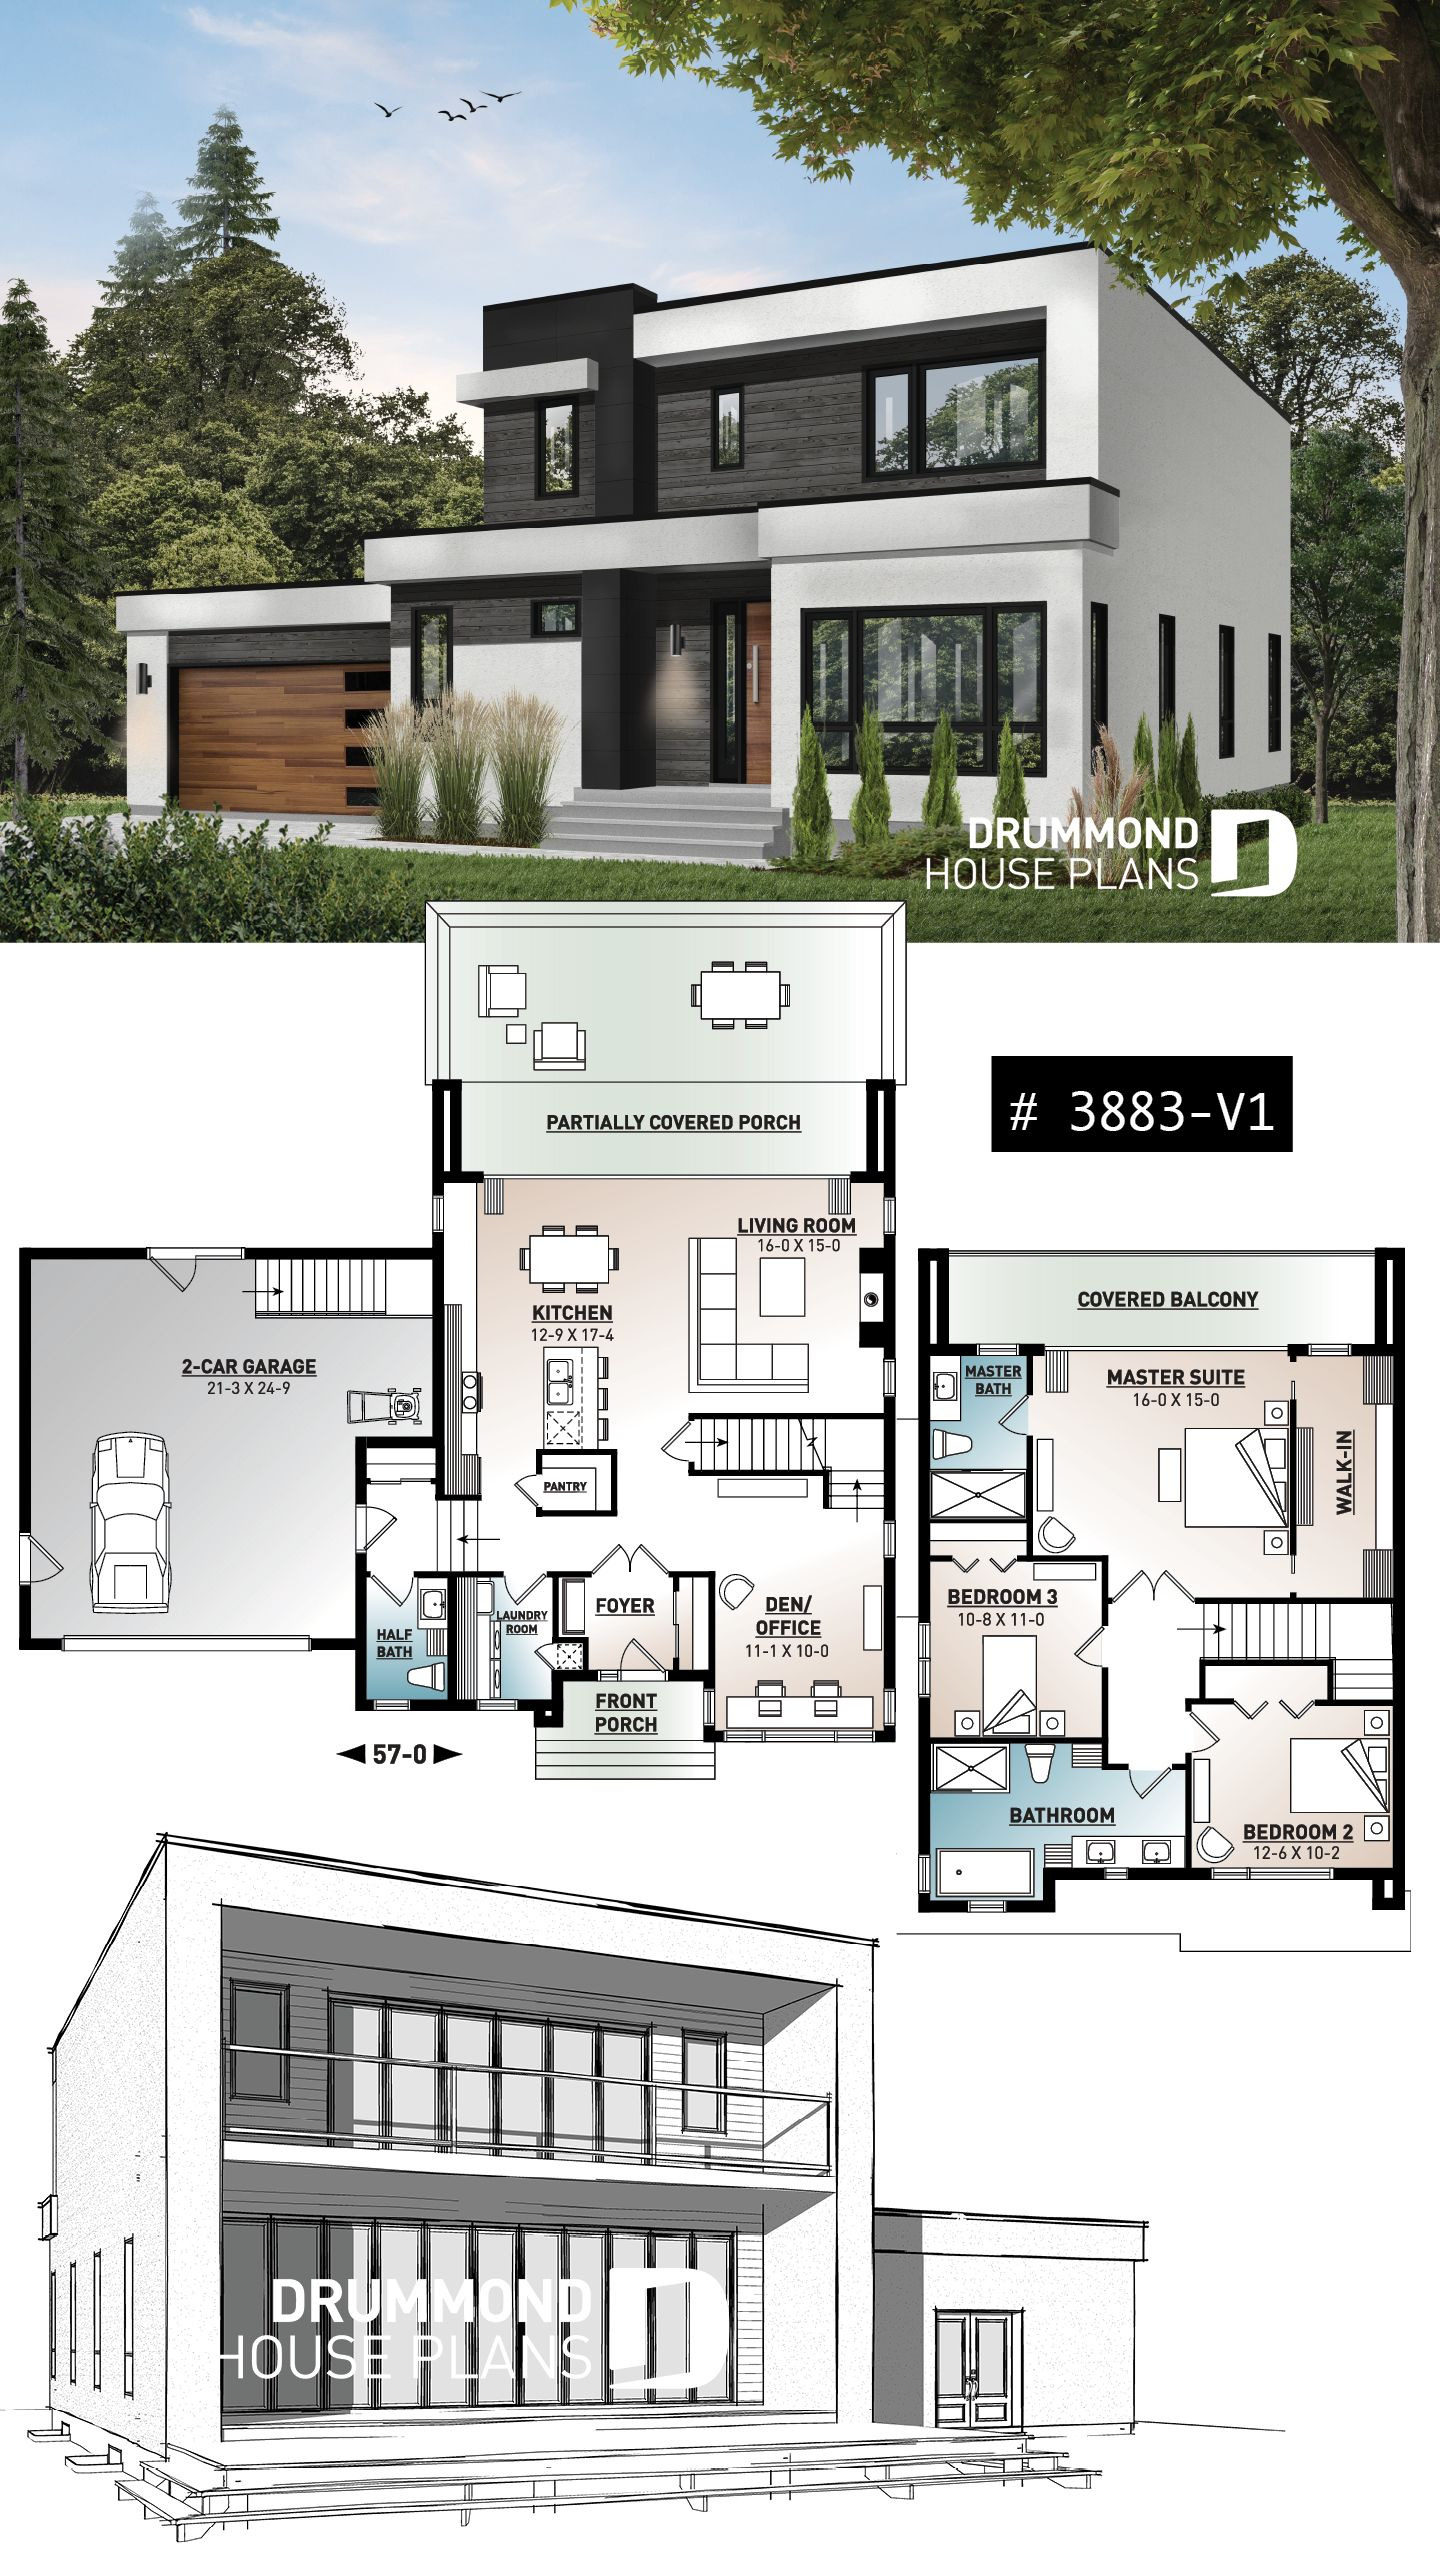 Modern House Plans with Pictures Luxury House Plan Es 2 No 3883 V1